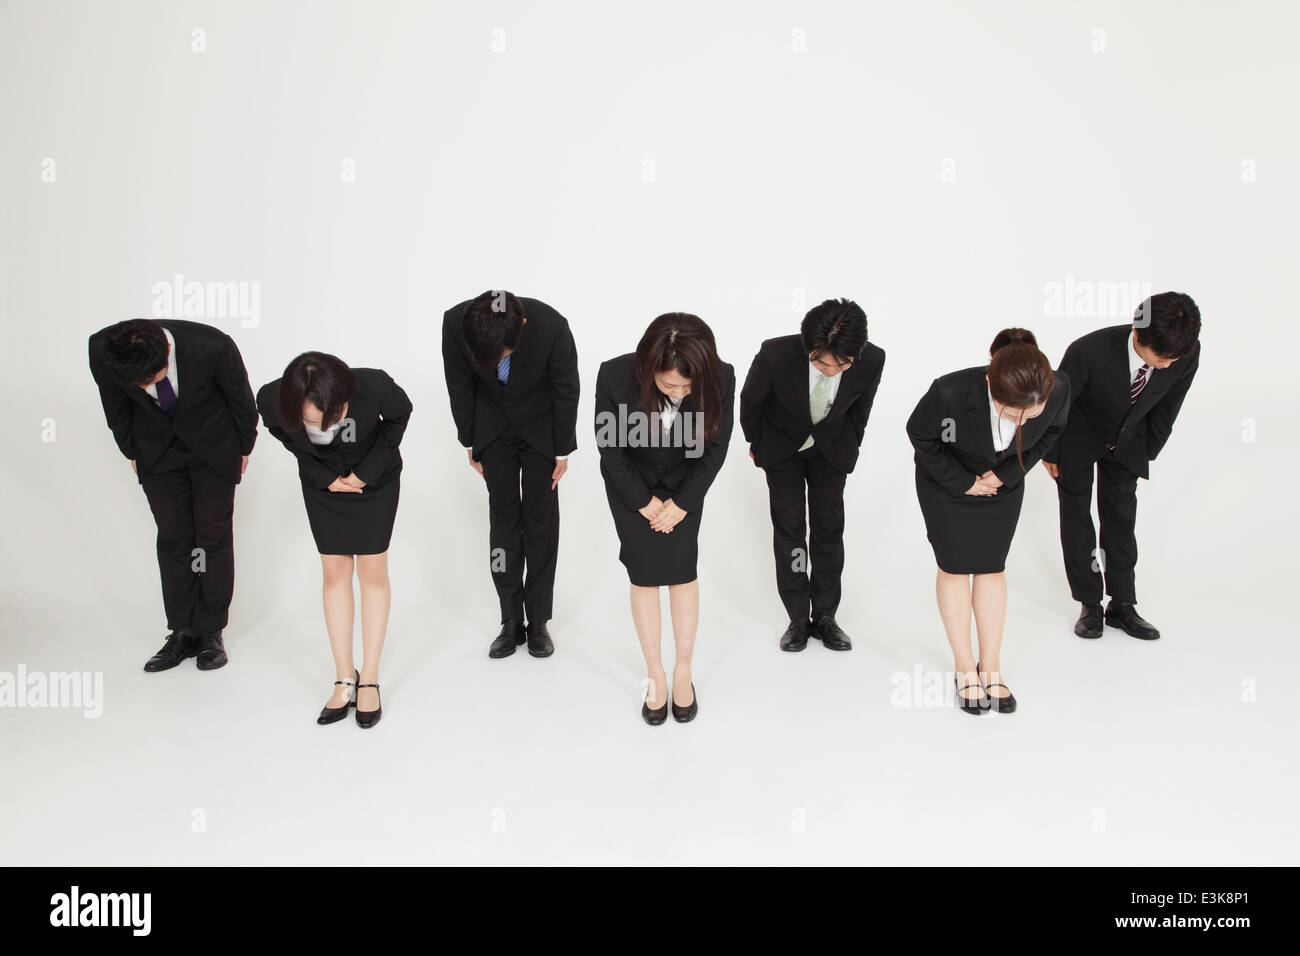 Japanese Bowing Stock Photos Japanese Bowing Stock Images Alamy